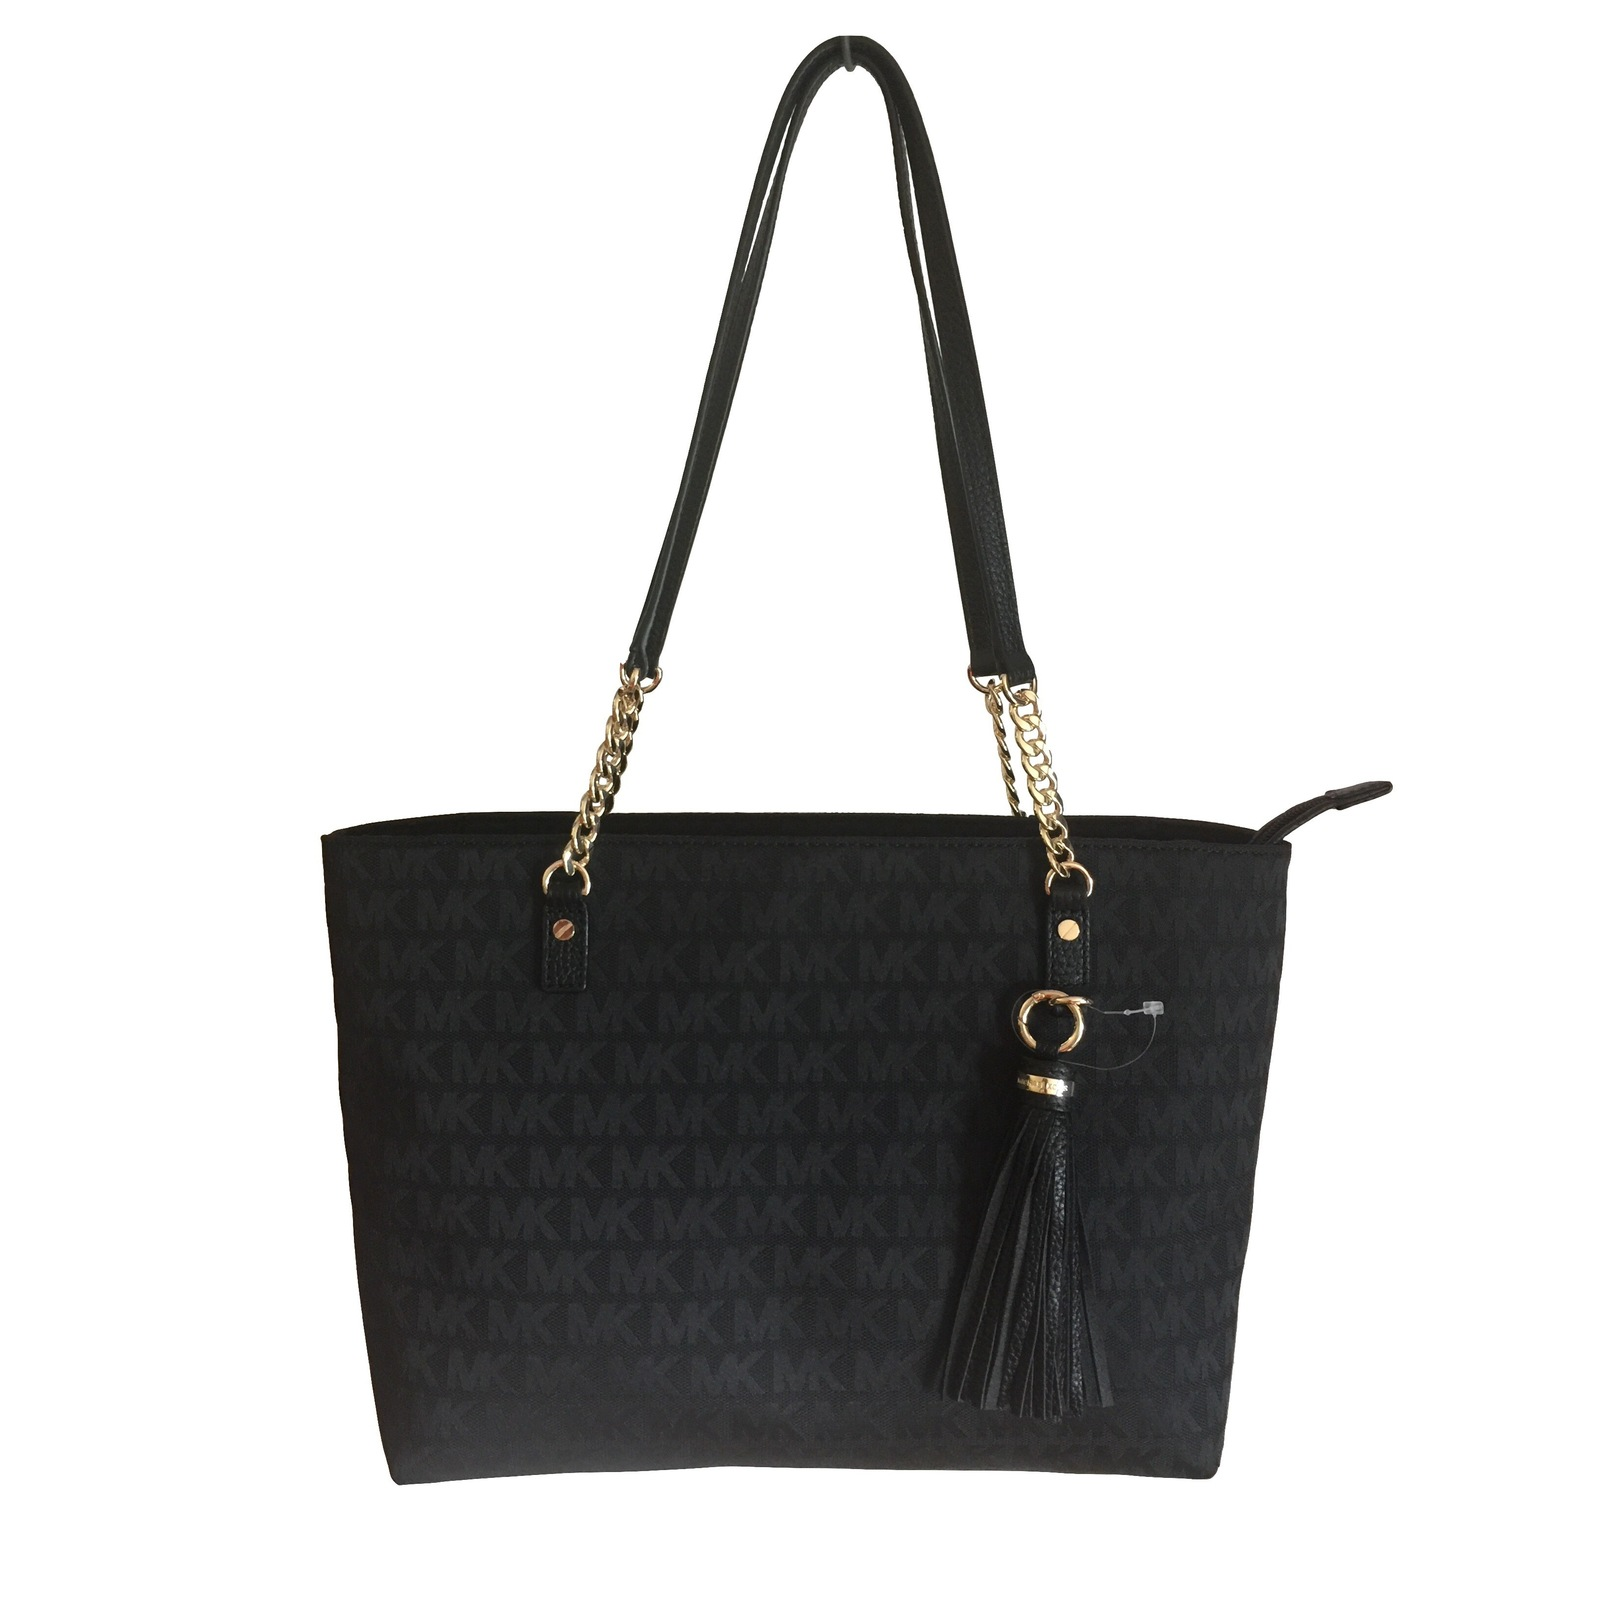 4eb3a870f4b4 Img 6233. Img 6233. Previous. MICHAEL KORS Jet Set Tassel Chain Tote Black  MK Logo Jacquard Shoulder Bag